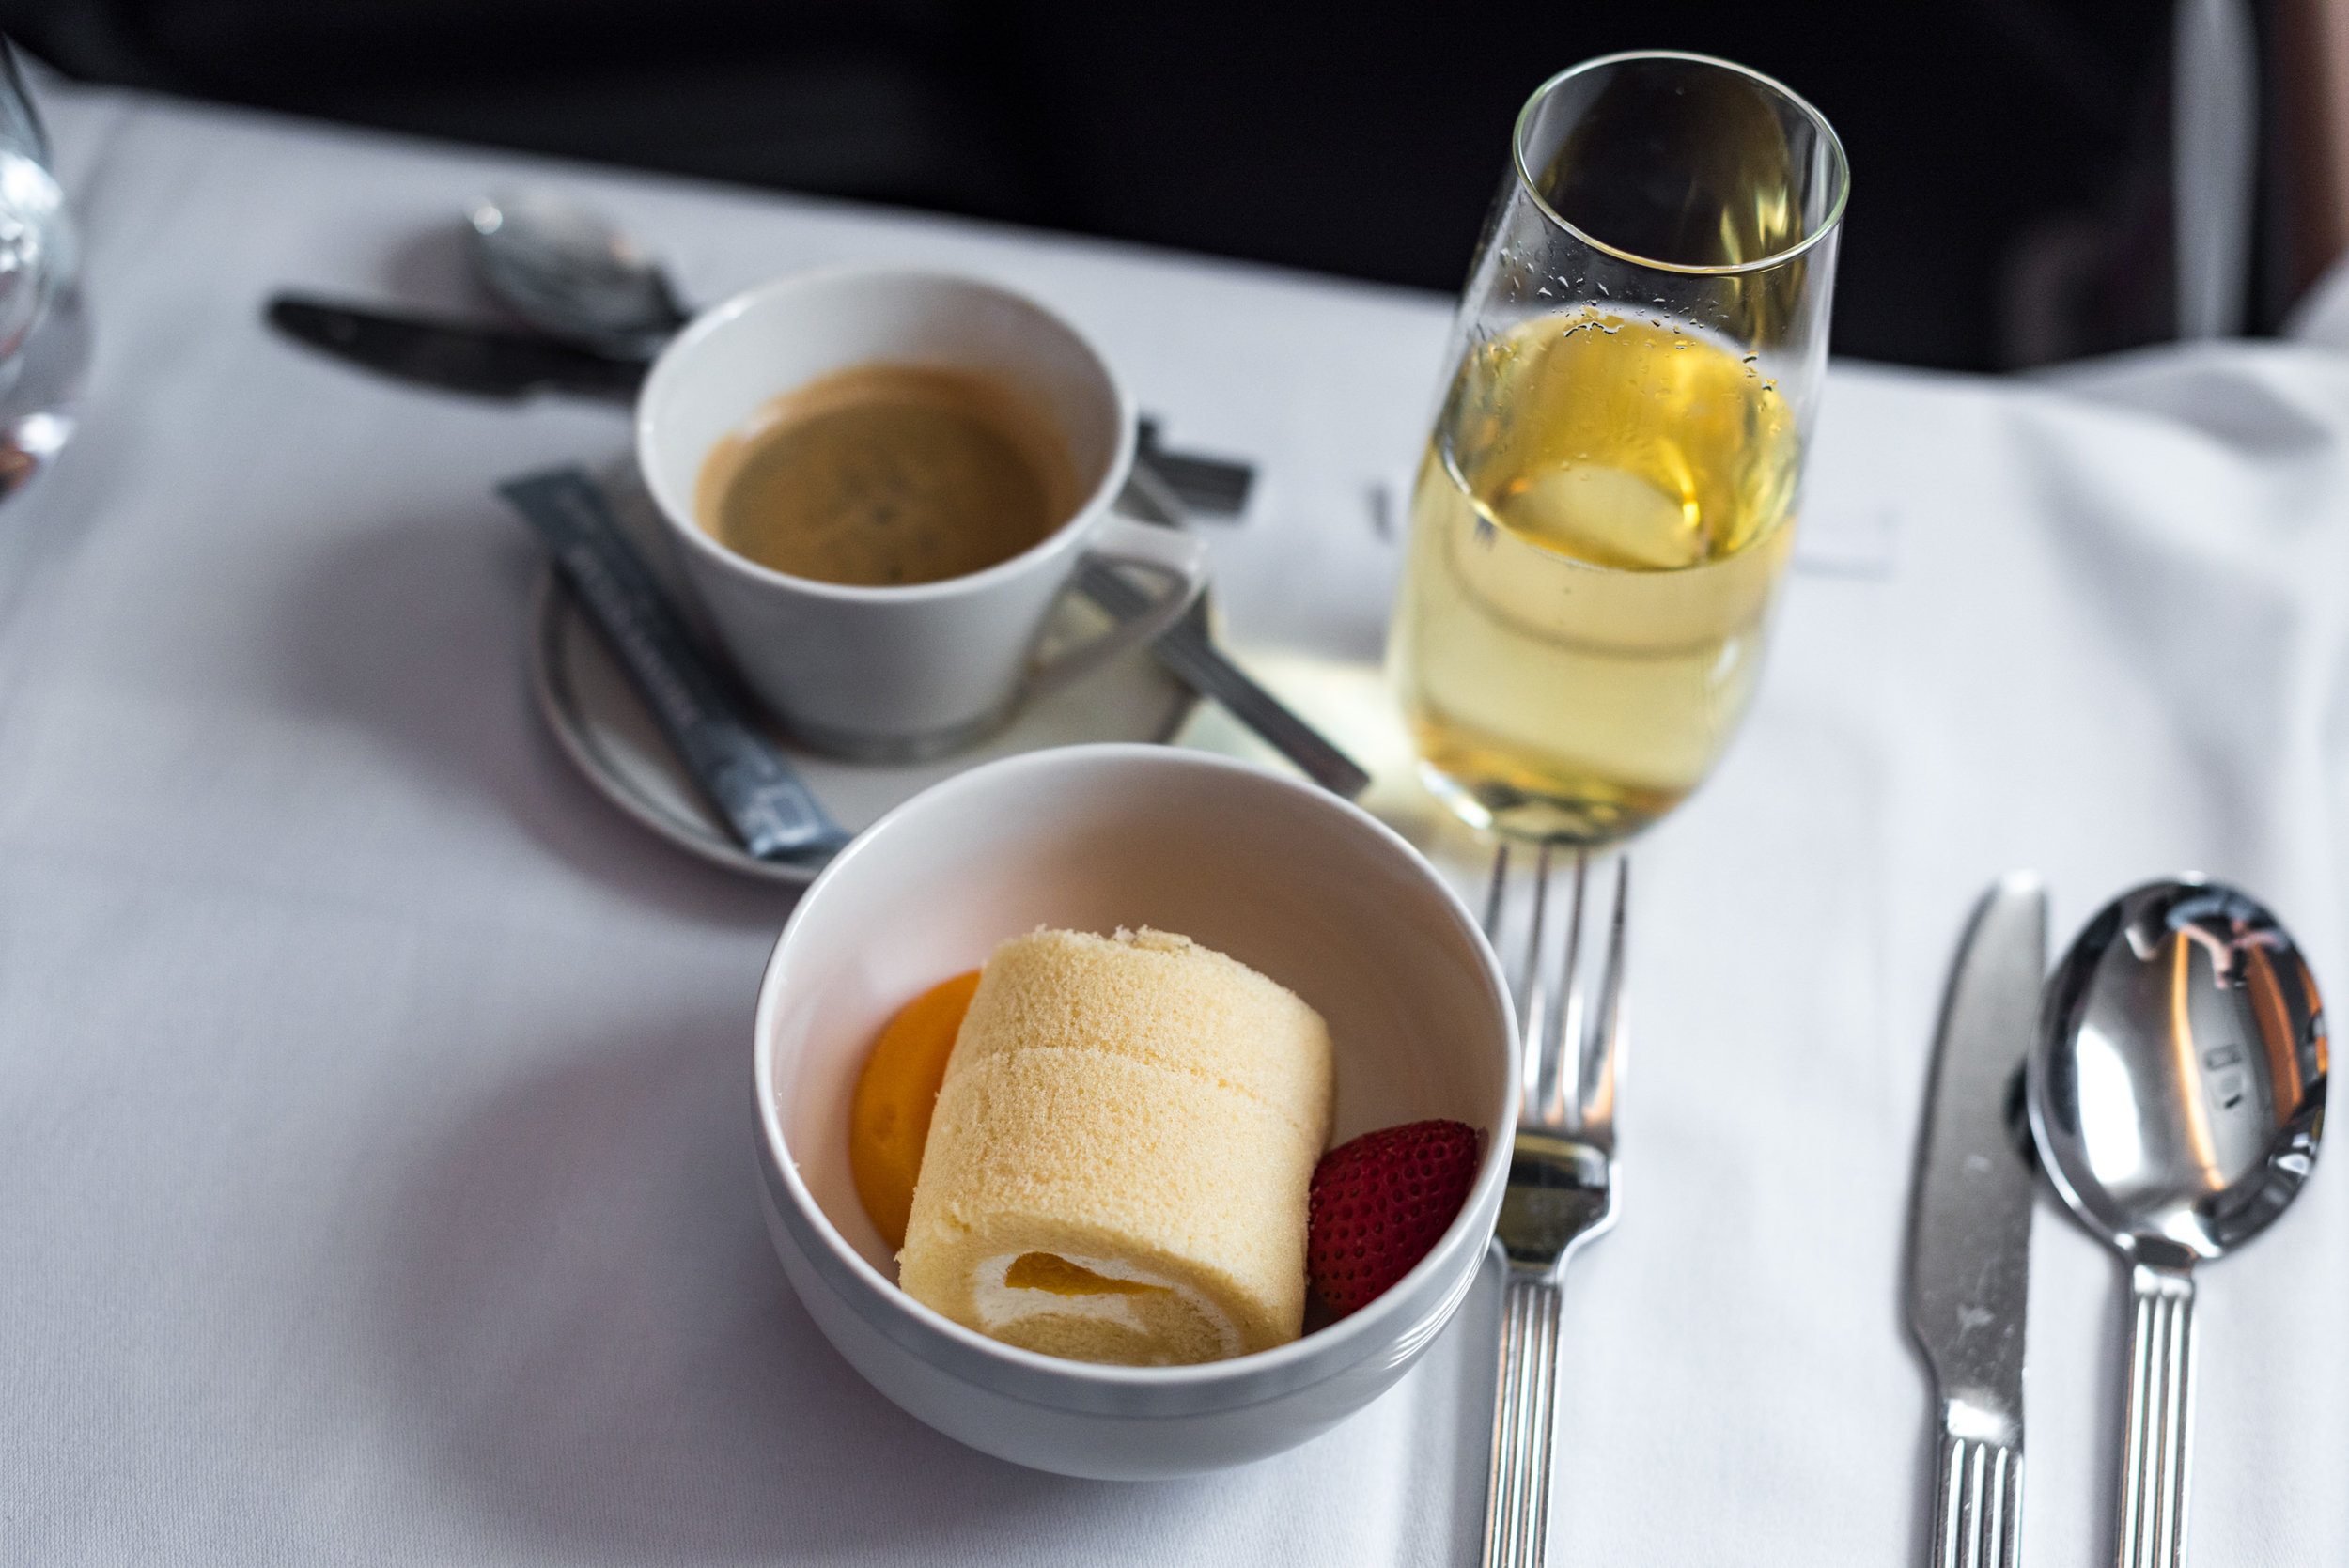 Summer Peach Chantilly Cake - Brunch Service  Singapore Airlines SQ856 Business - SIN to HKG